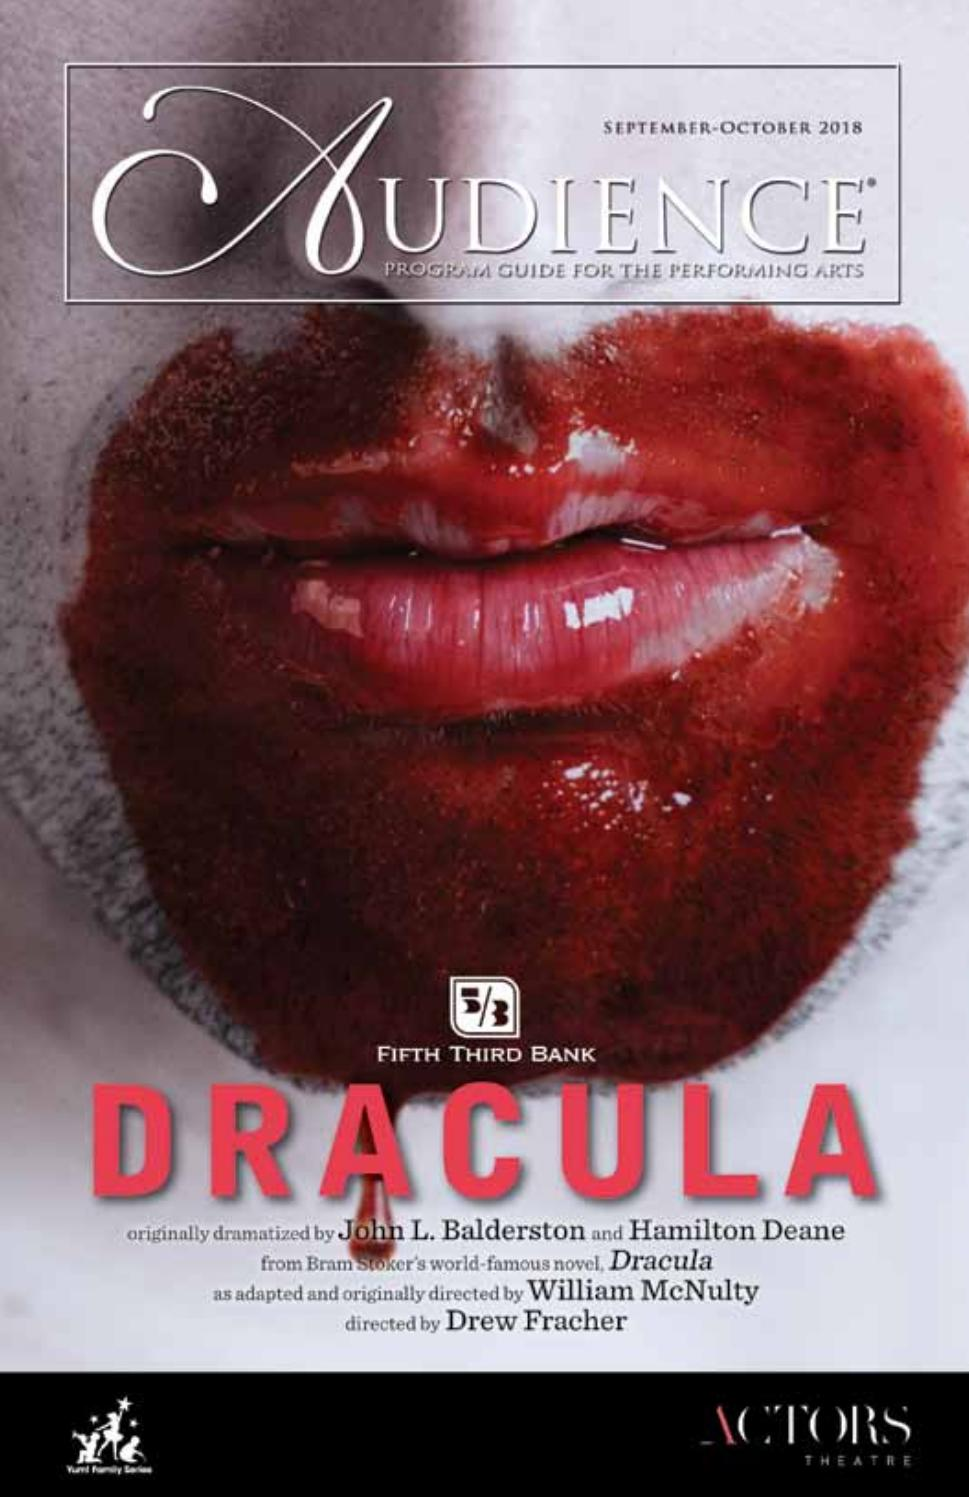 Audience Dracula Actors Theatre September 2018 By Audience502 Issuu